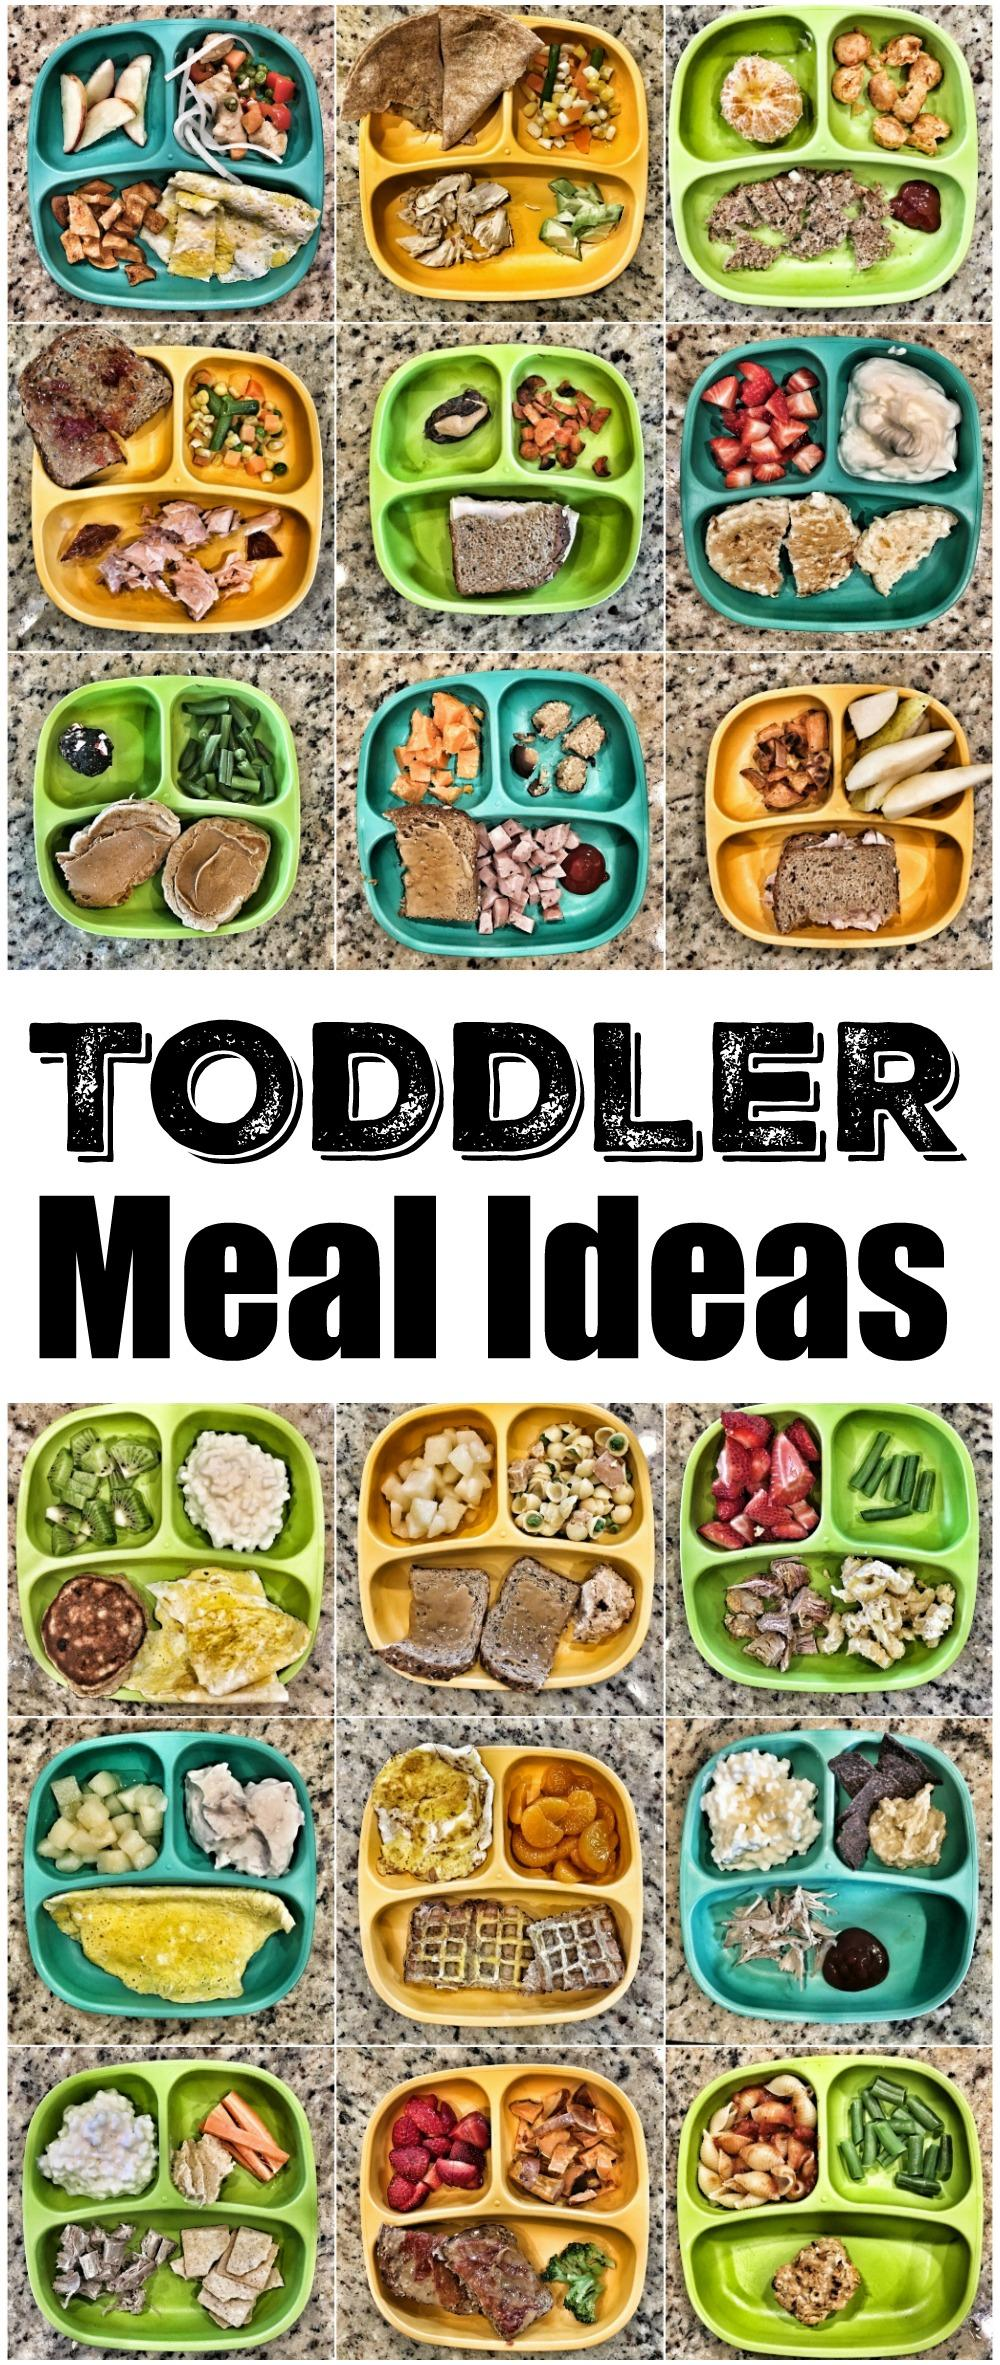 Use these Quick Toddler Meal Ideas to inspire some healthy new ideas for breakfast, lunch and dinner!